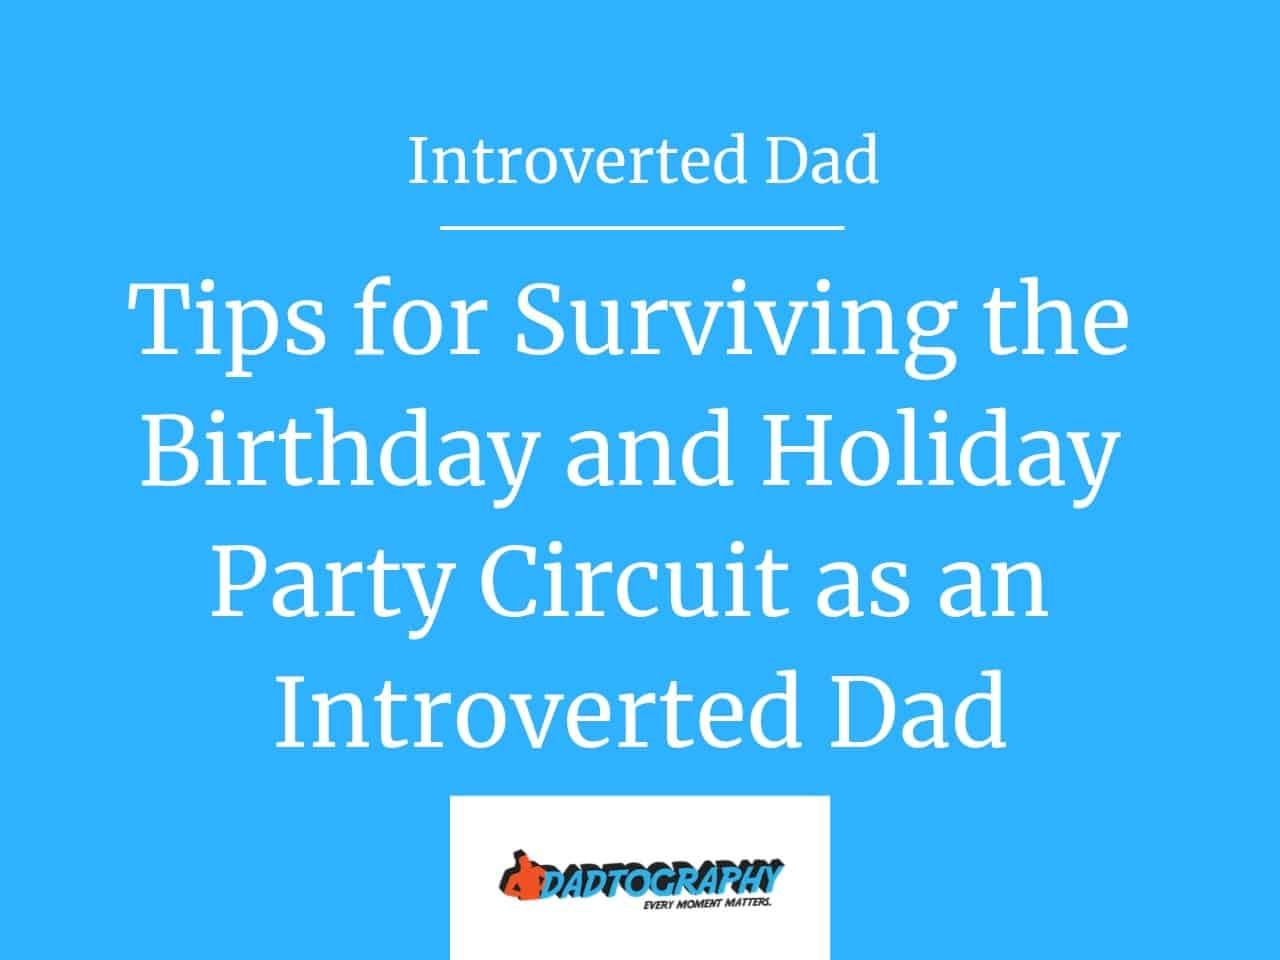 How to survive parties as an introverted dad